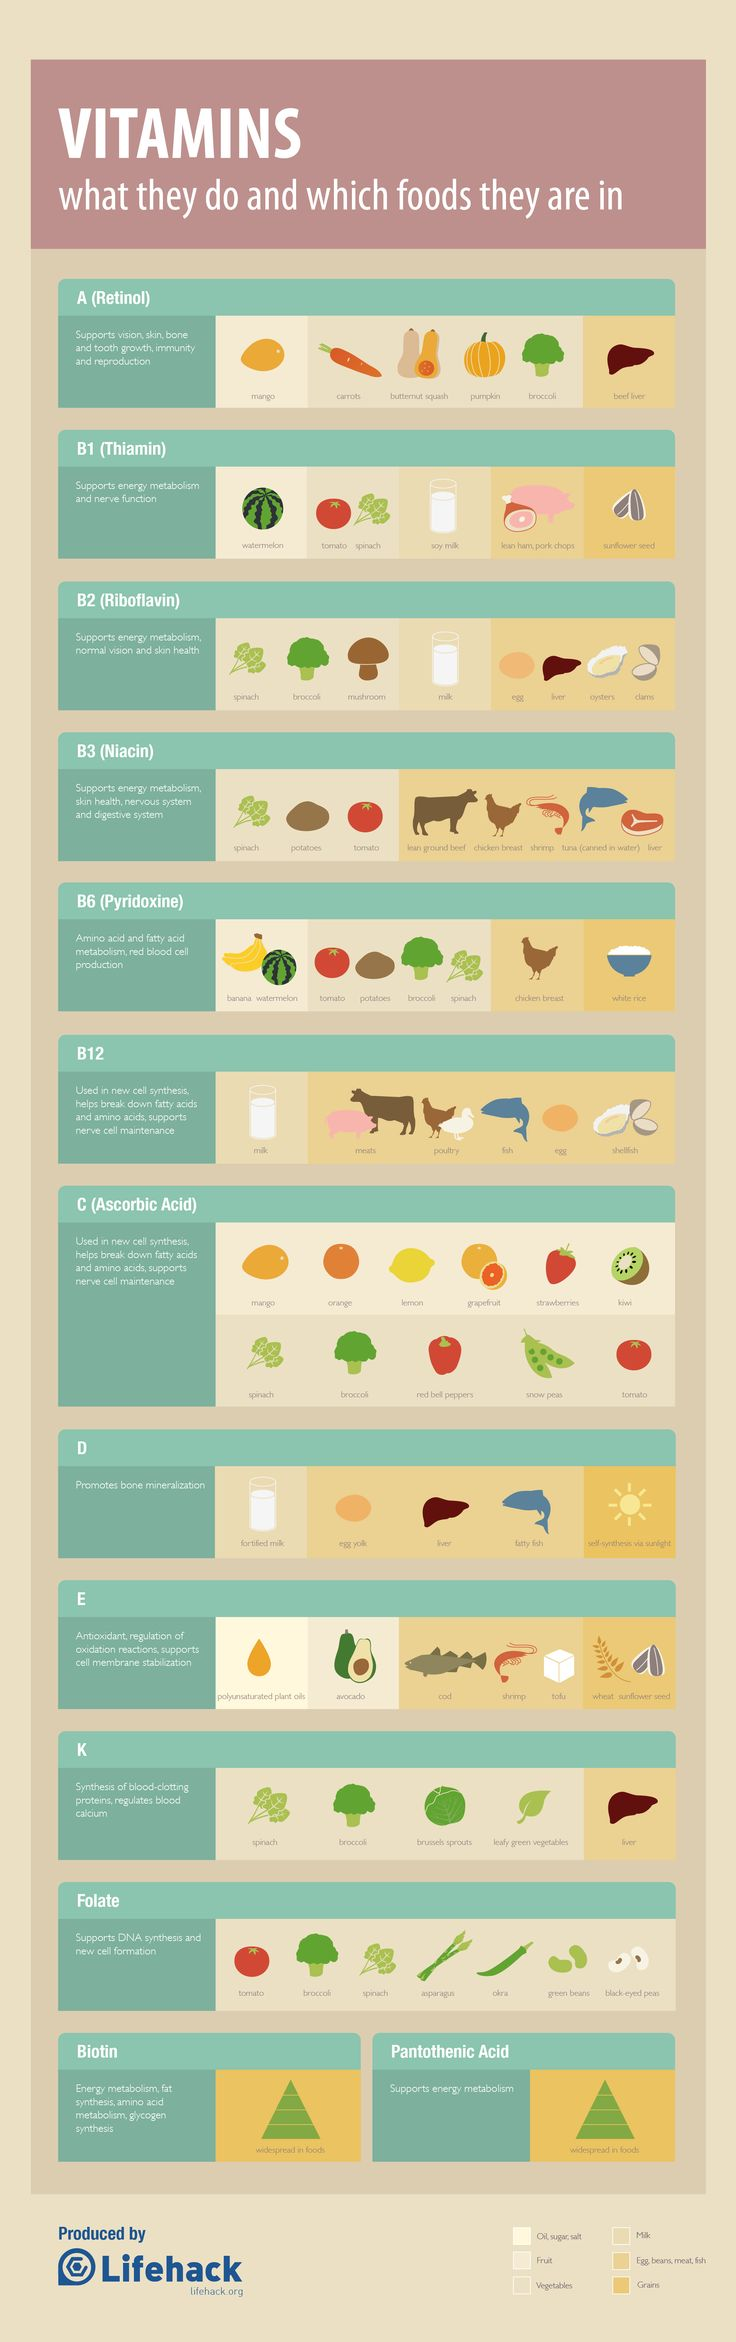 Vitamins - What They Do and Which Foods They Are In by lifehack.org #Infographic #Vitamins